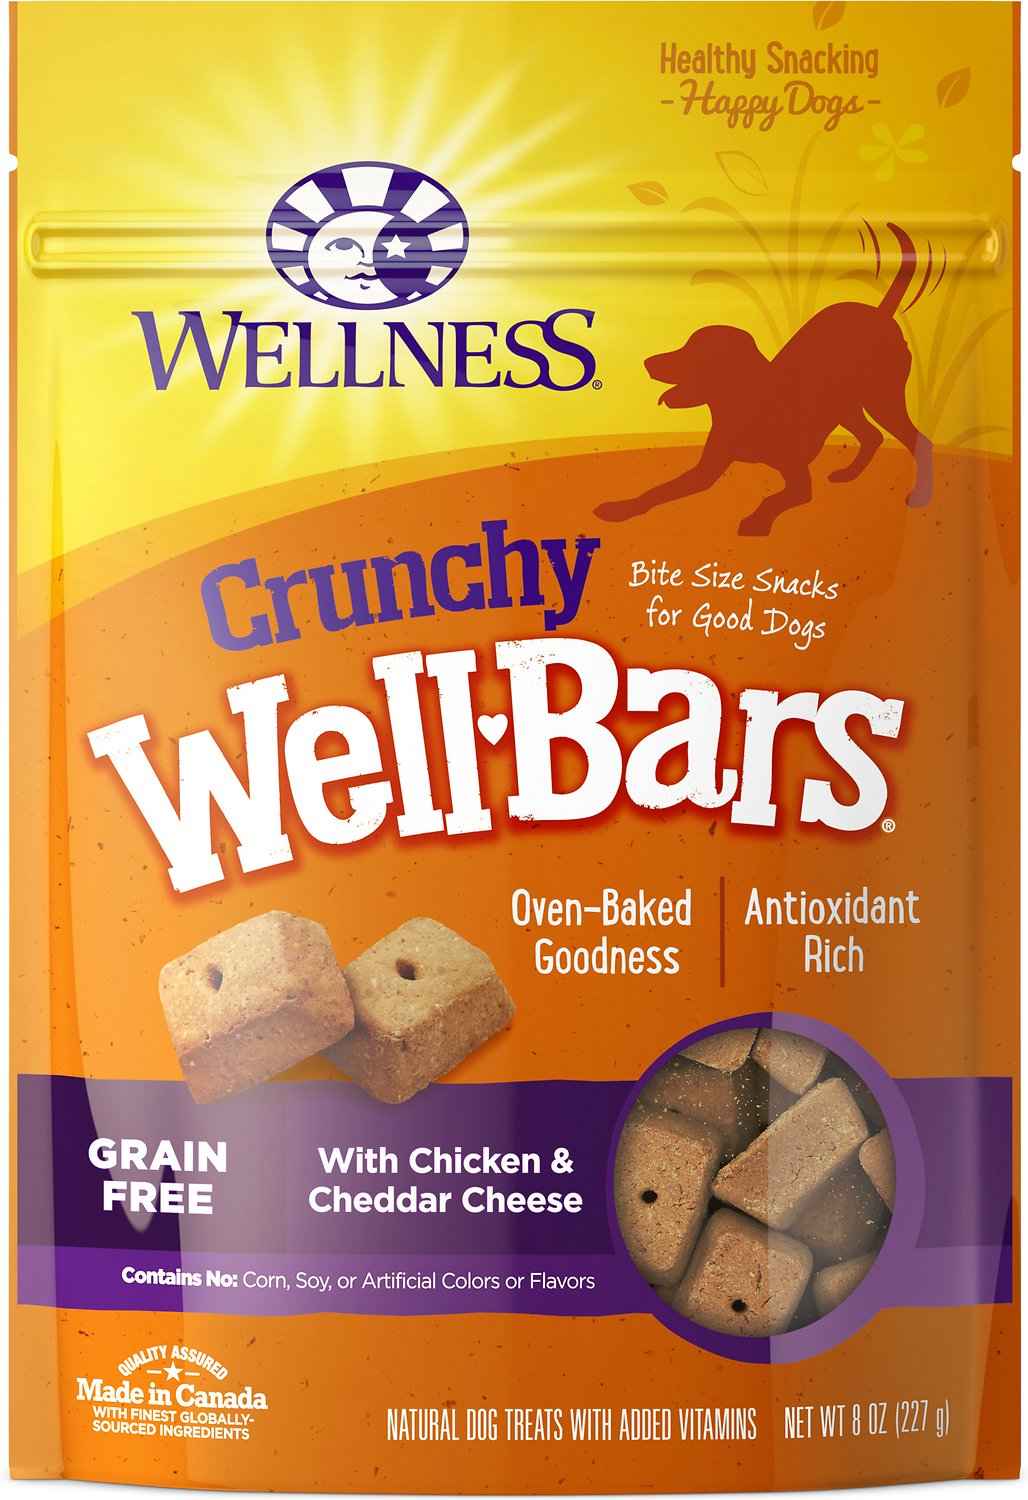 Wellness Grain-Free Crunchy WellBars Chicken & Cheddar Cheese Baked Dog Treats, 20-oz bag